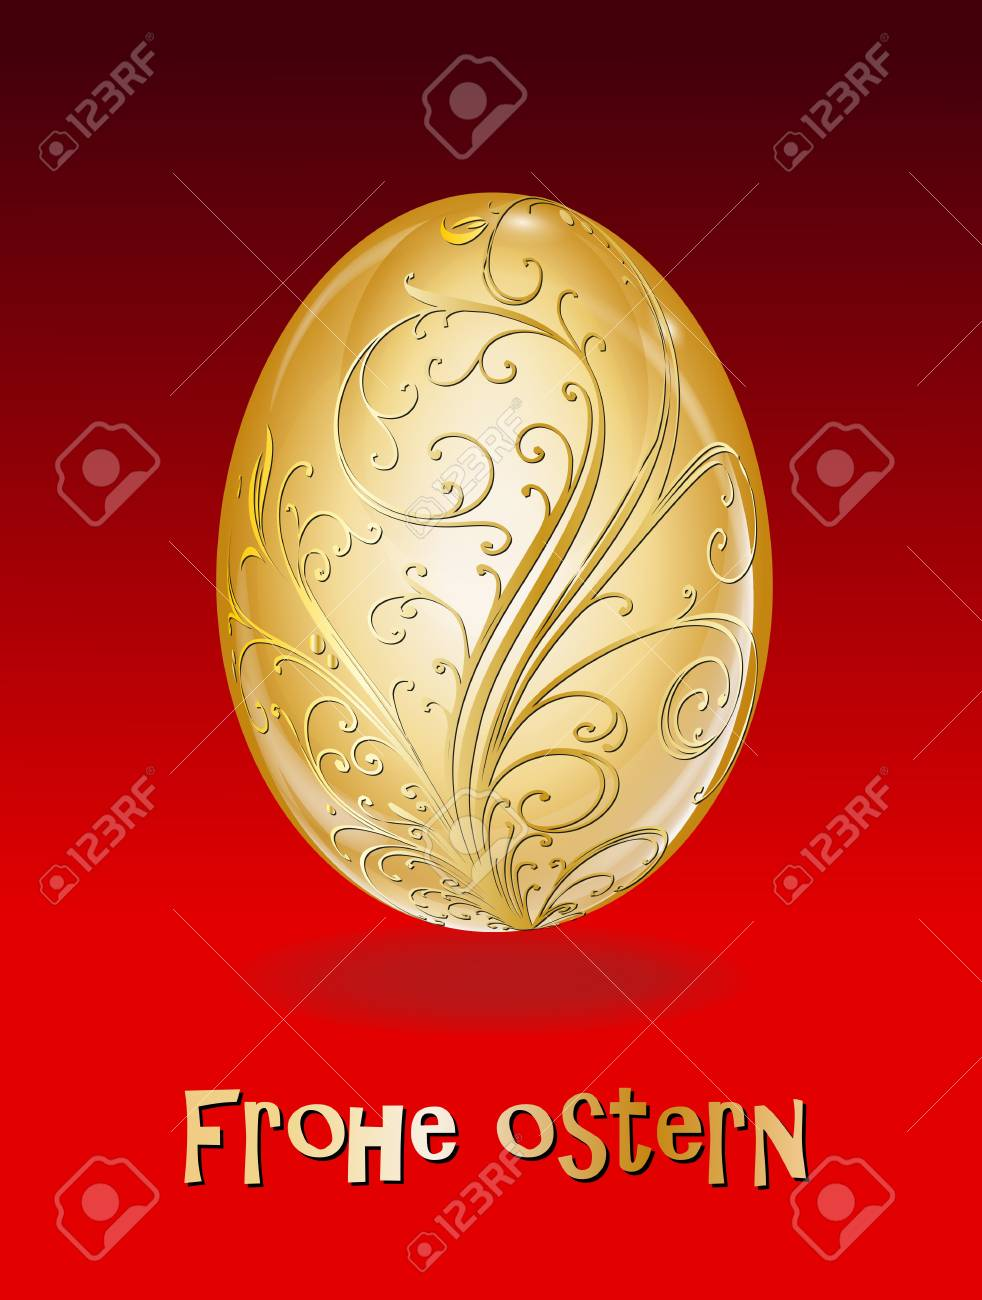 Osterei Gold Stock Vector - 17163701